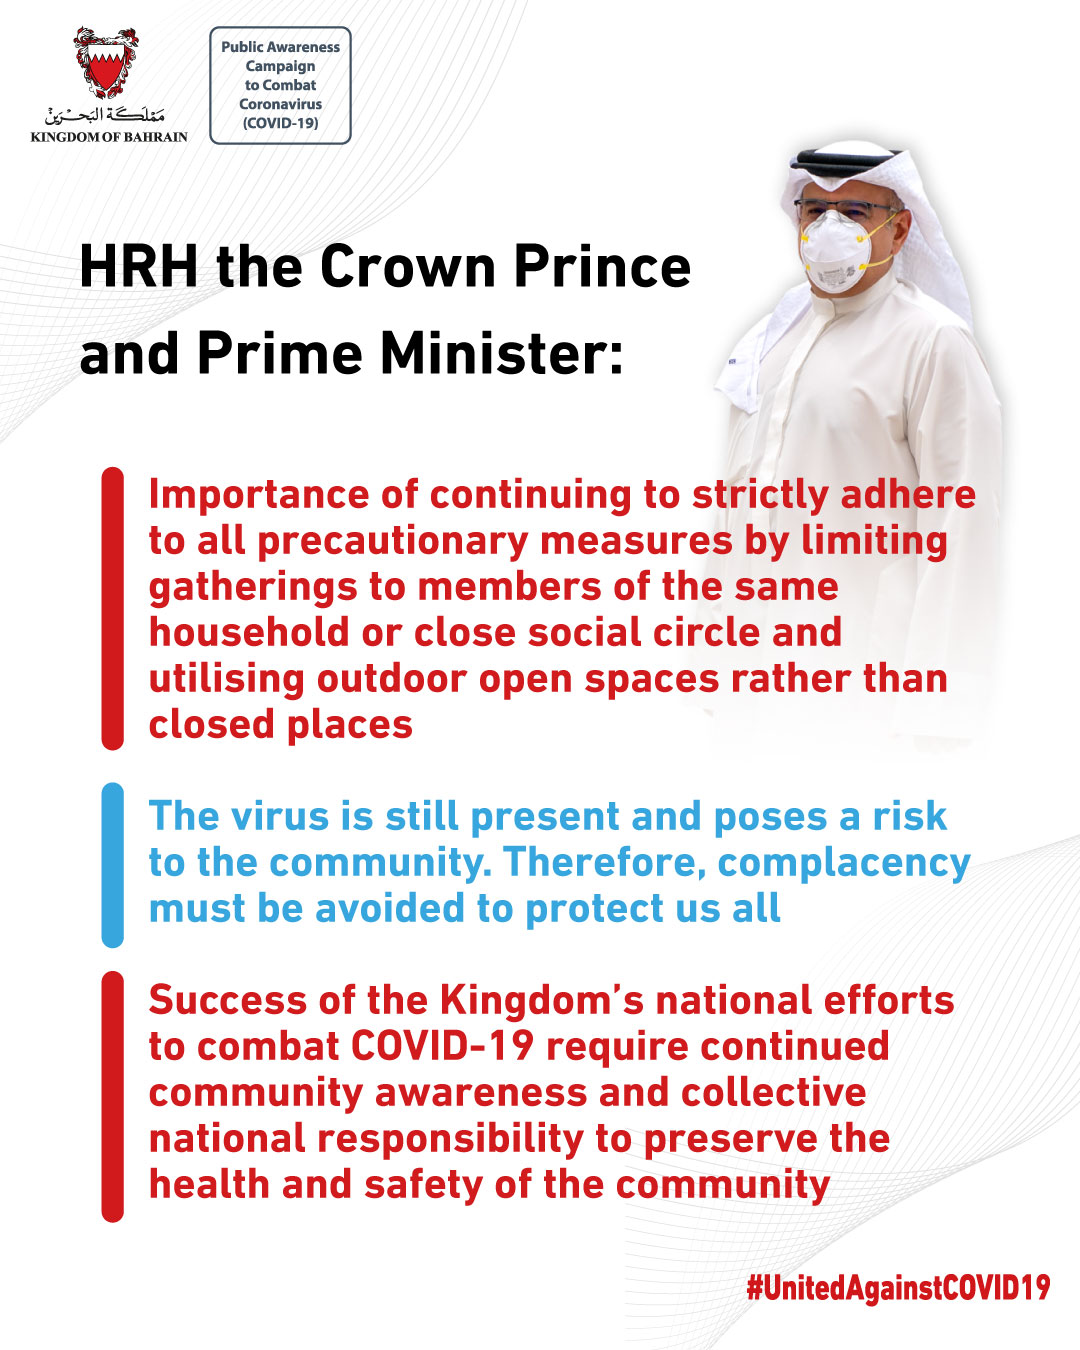 HRH the Crown Prince and Prime Minister stresses the importance of continuing to comply with precautionary measures to combat COVID-19